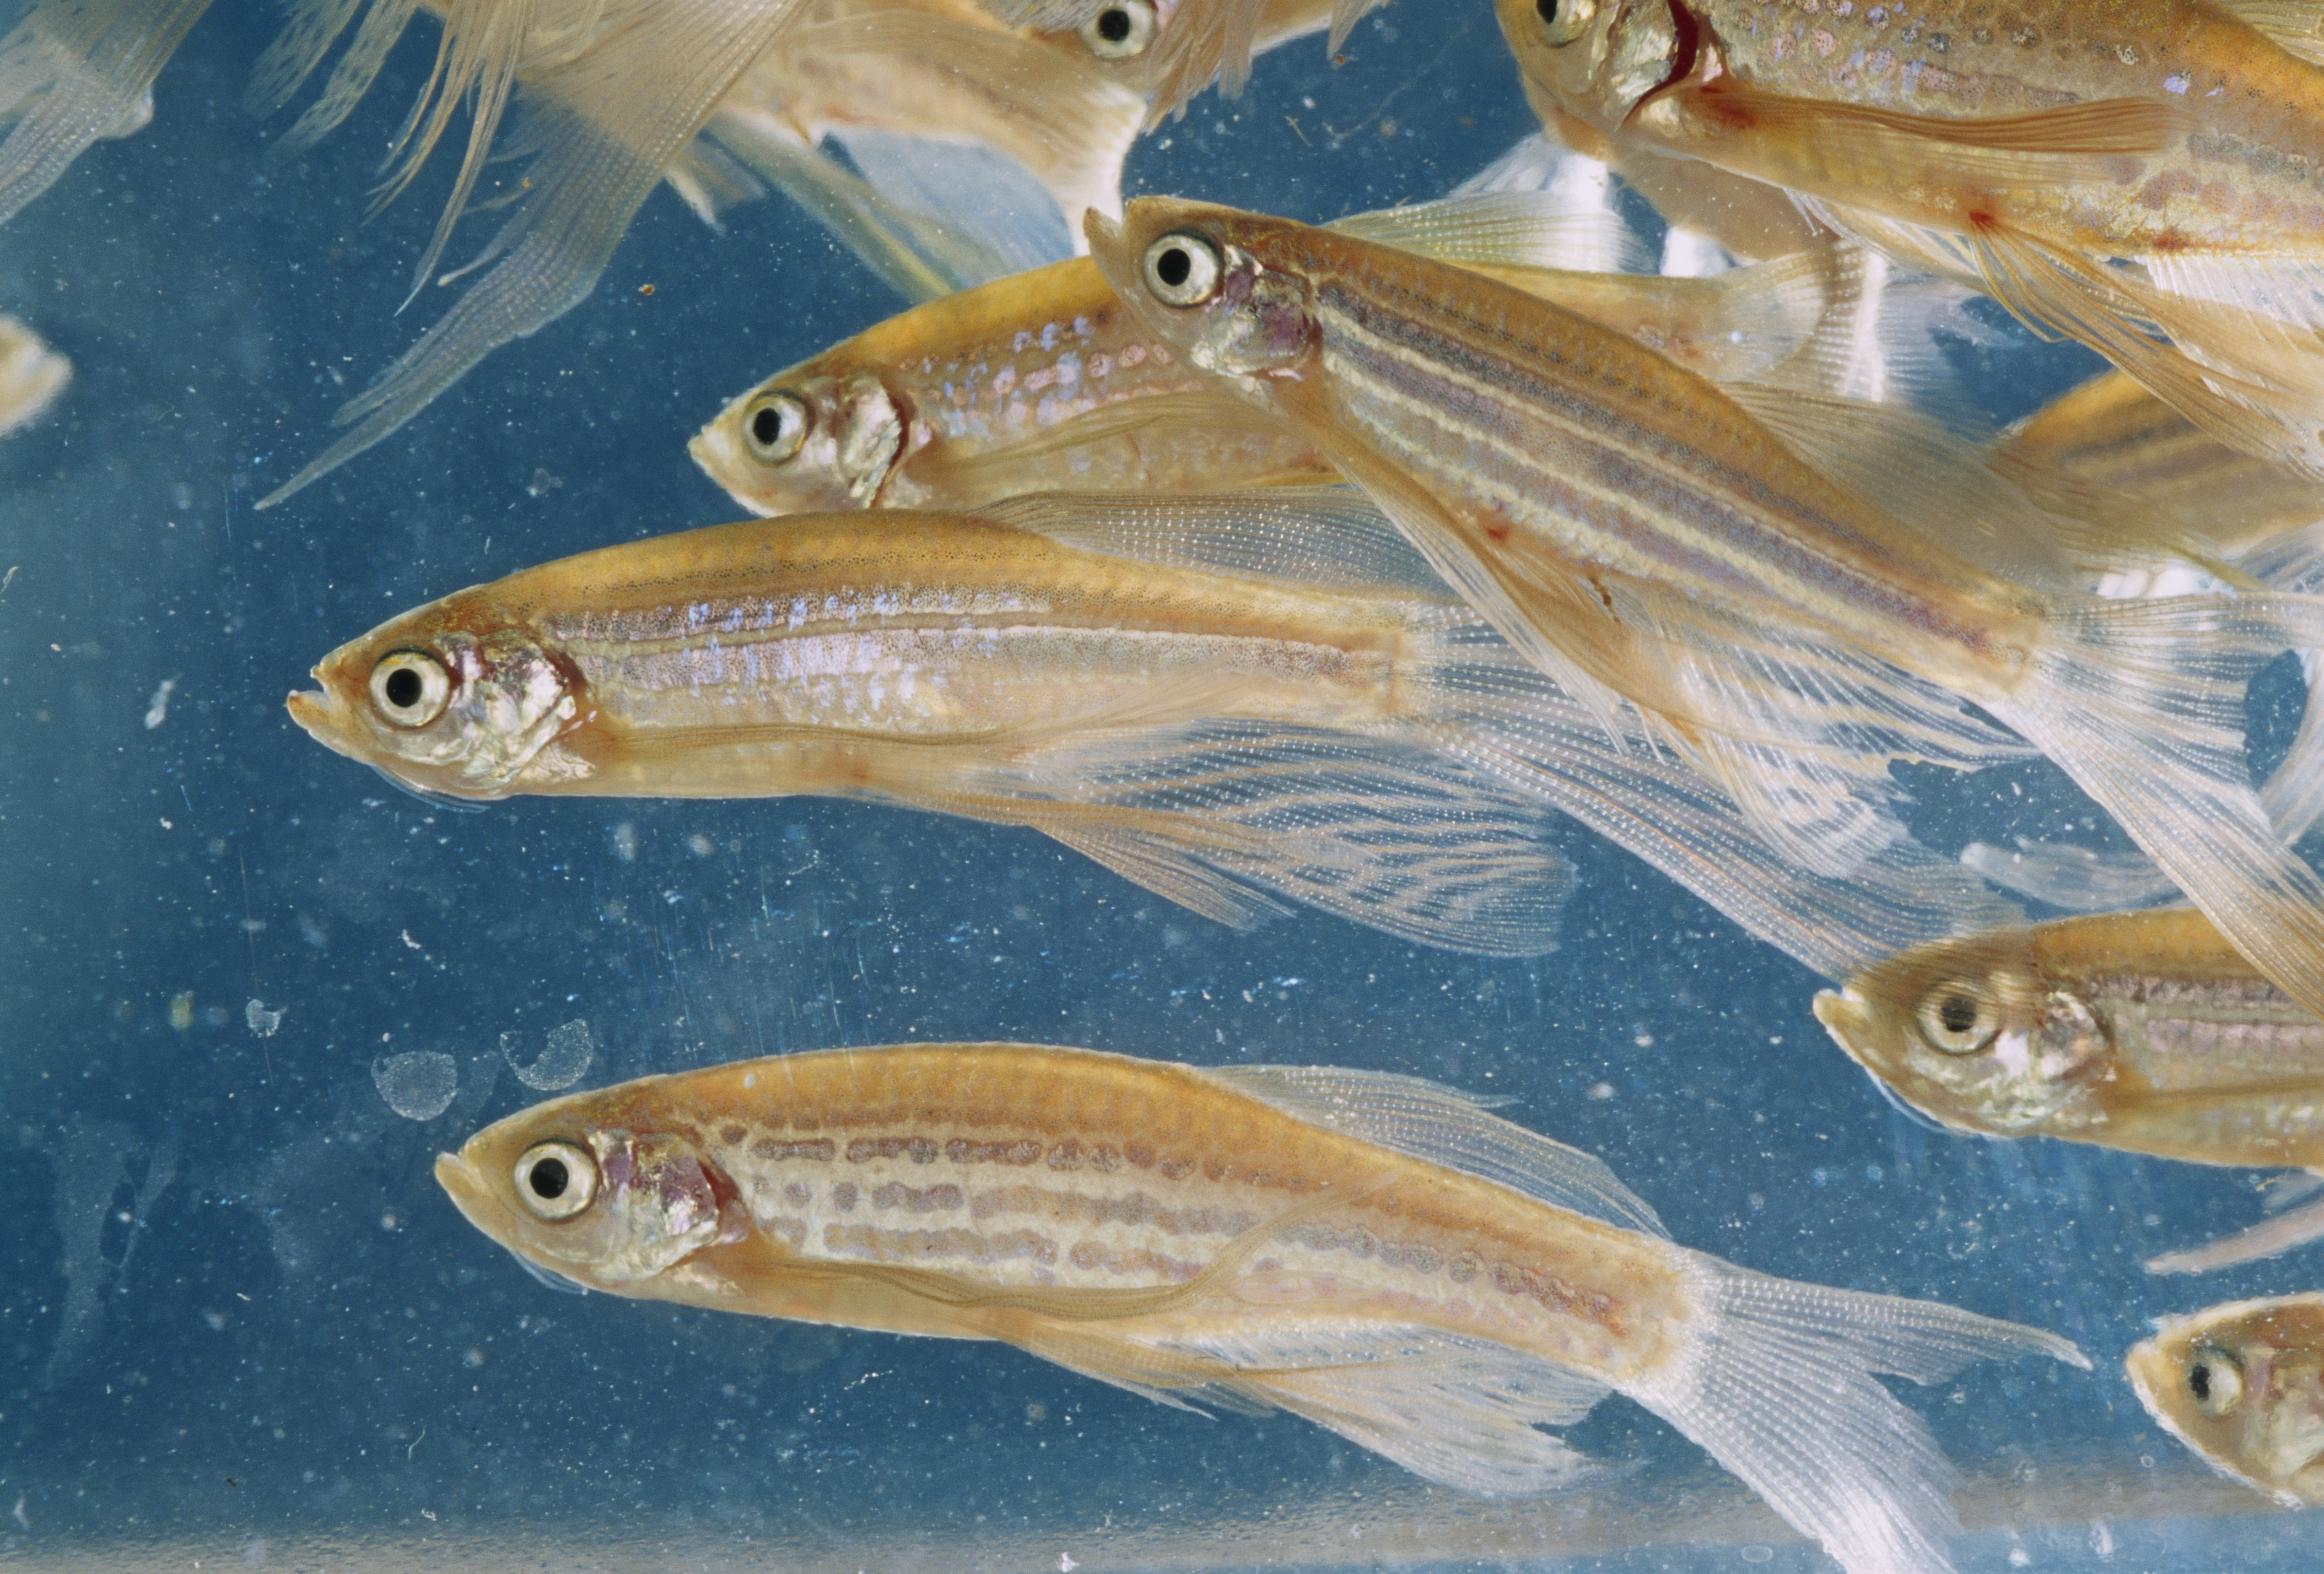 Zebra fish multiply in a water tank at N.I.H.